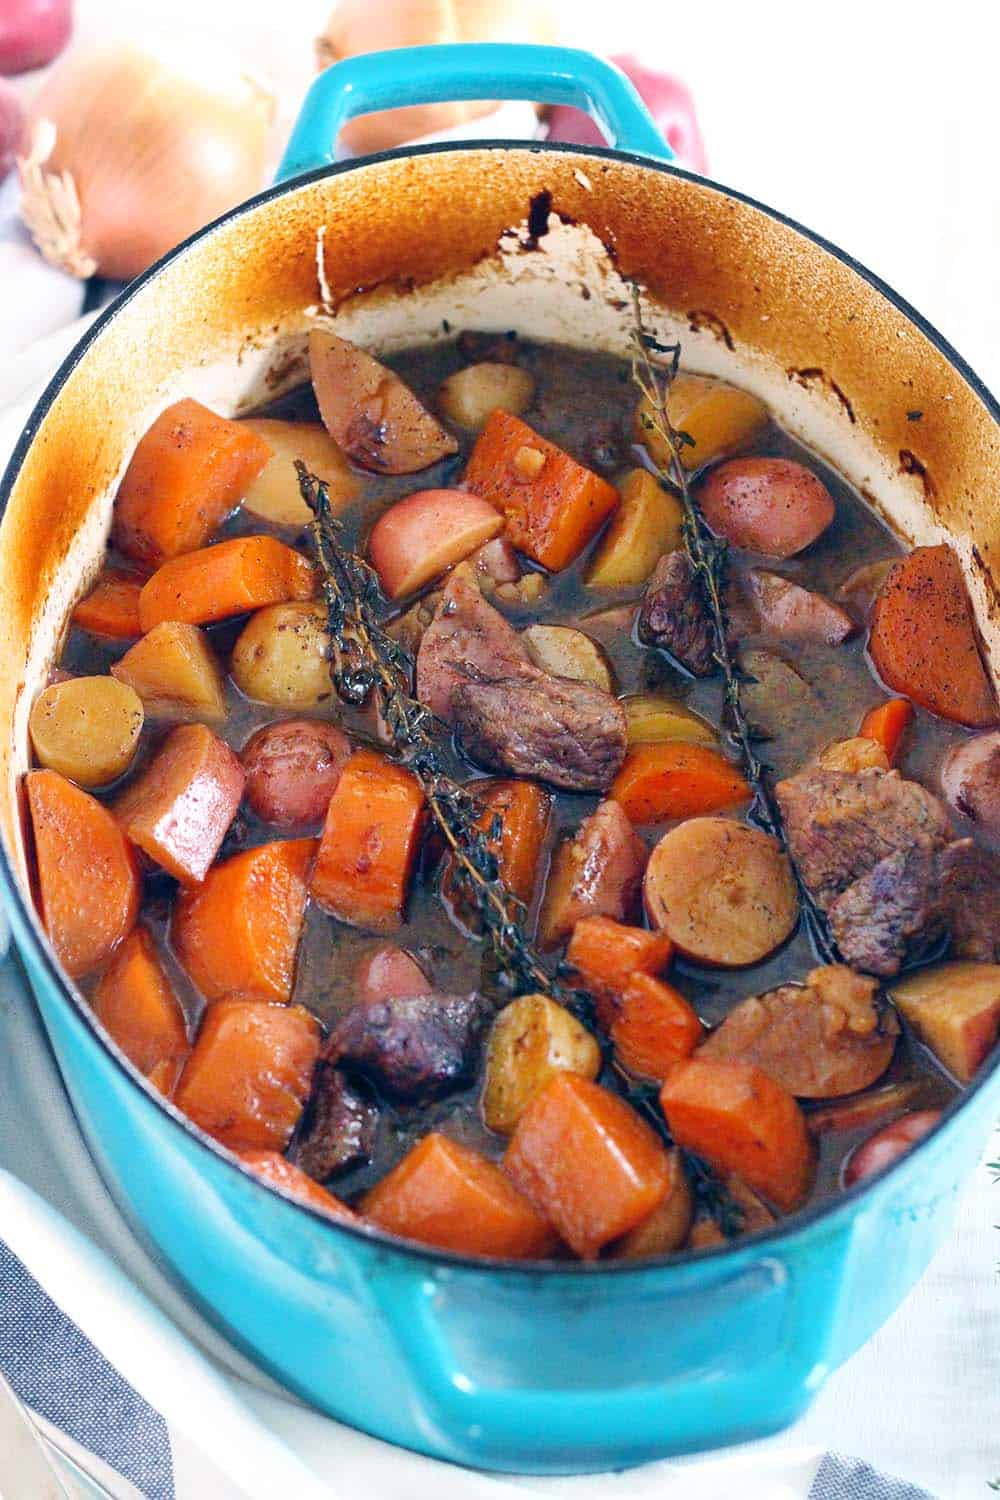 This simple Irish Lamb and Potato Stew is cooked in a dutch oven and is warm and comforting during cold weather. Sweet potatoes and dark beer are added for amazing depth of flavor, with no flour needed as a thickener. Easily adaptable to be paleo/whole30 compliant! #IrishFood #Paleo #LambStew